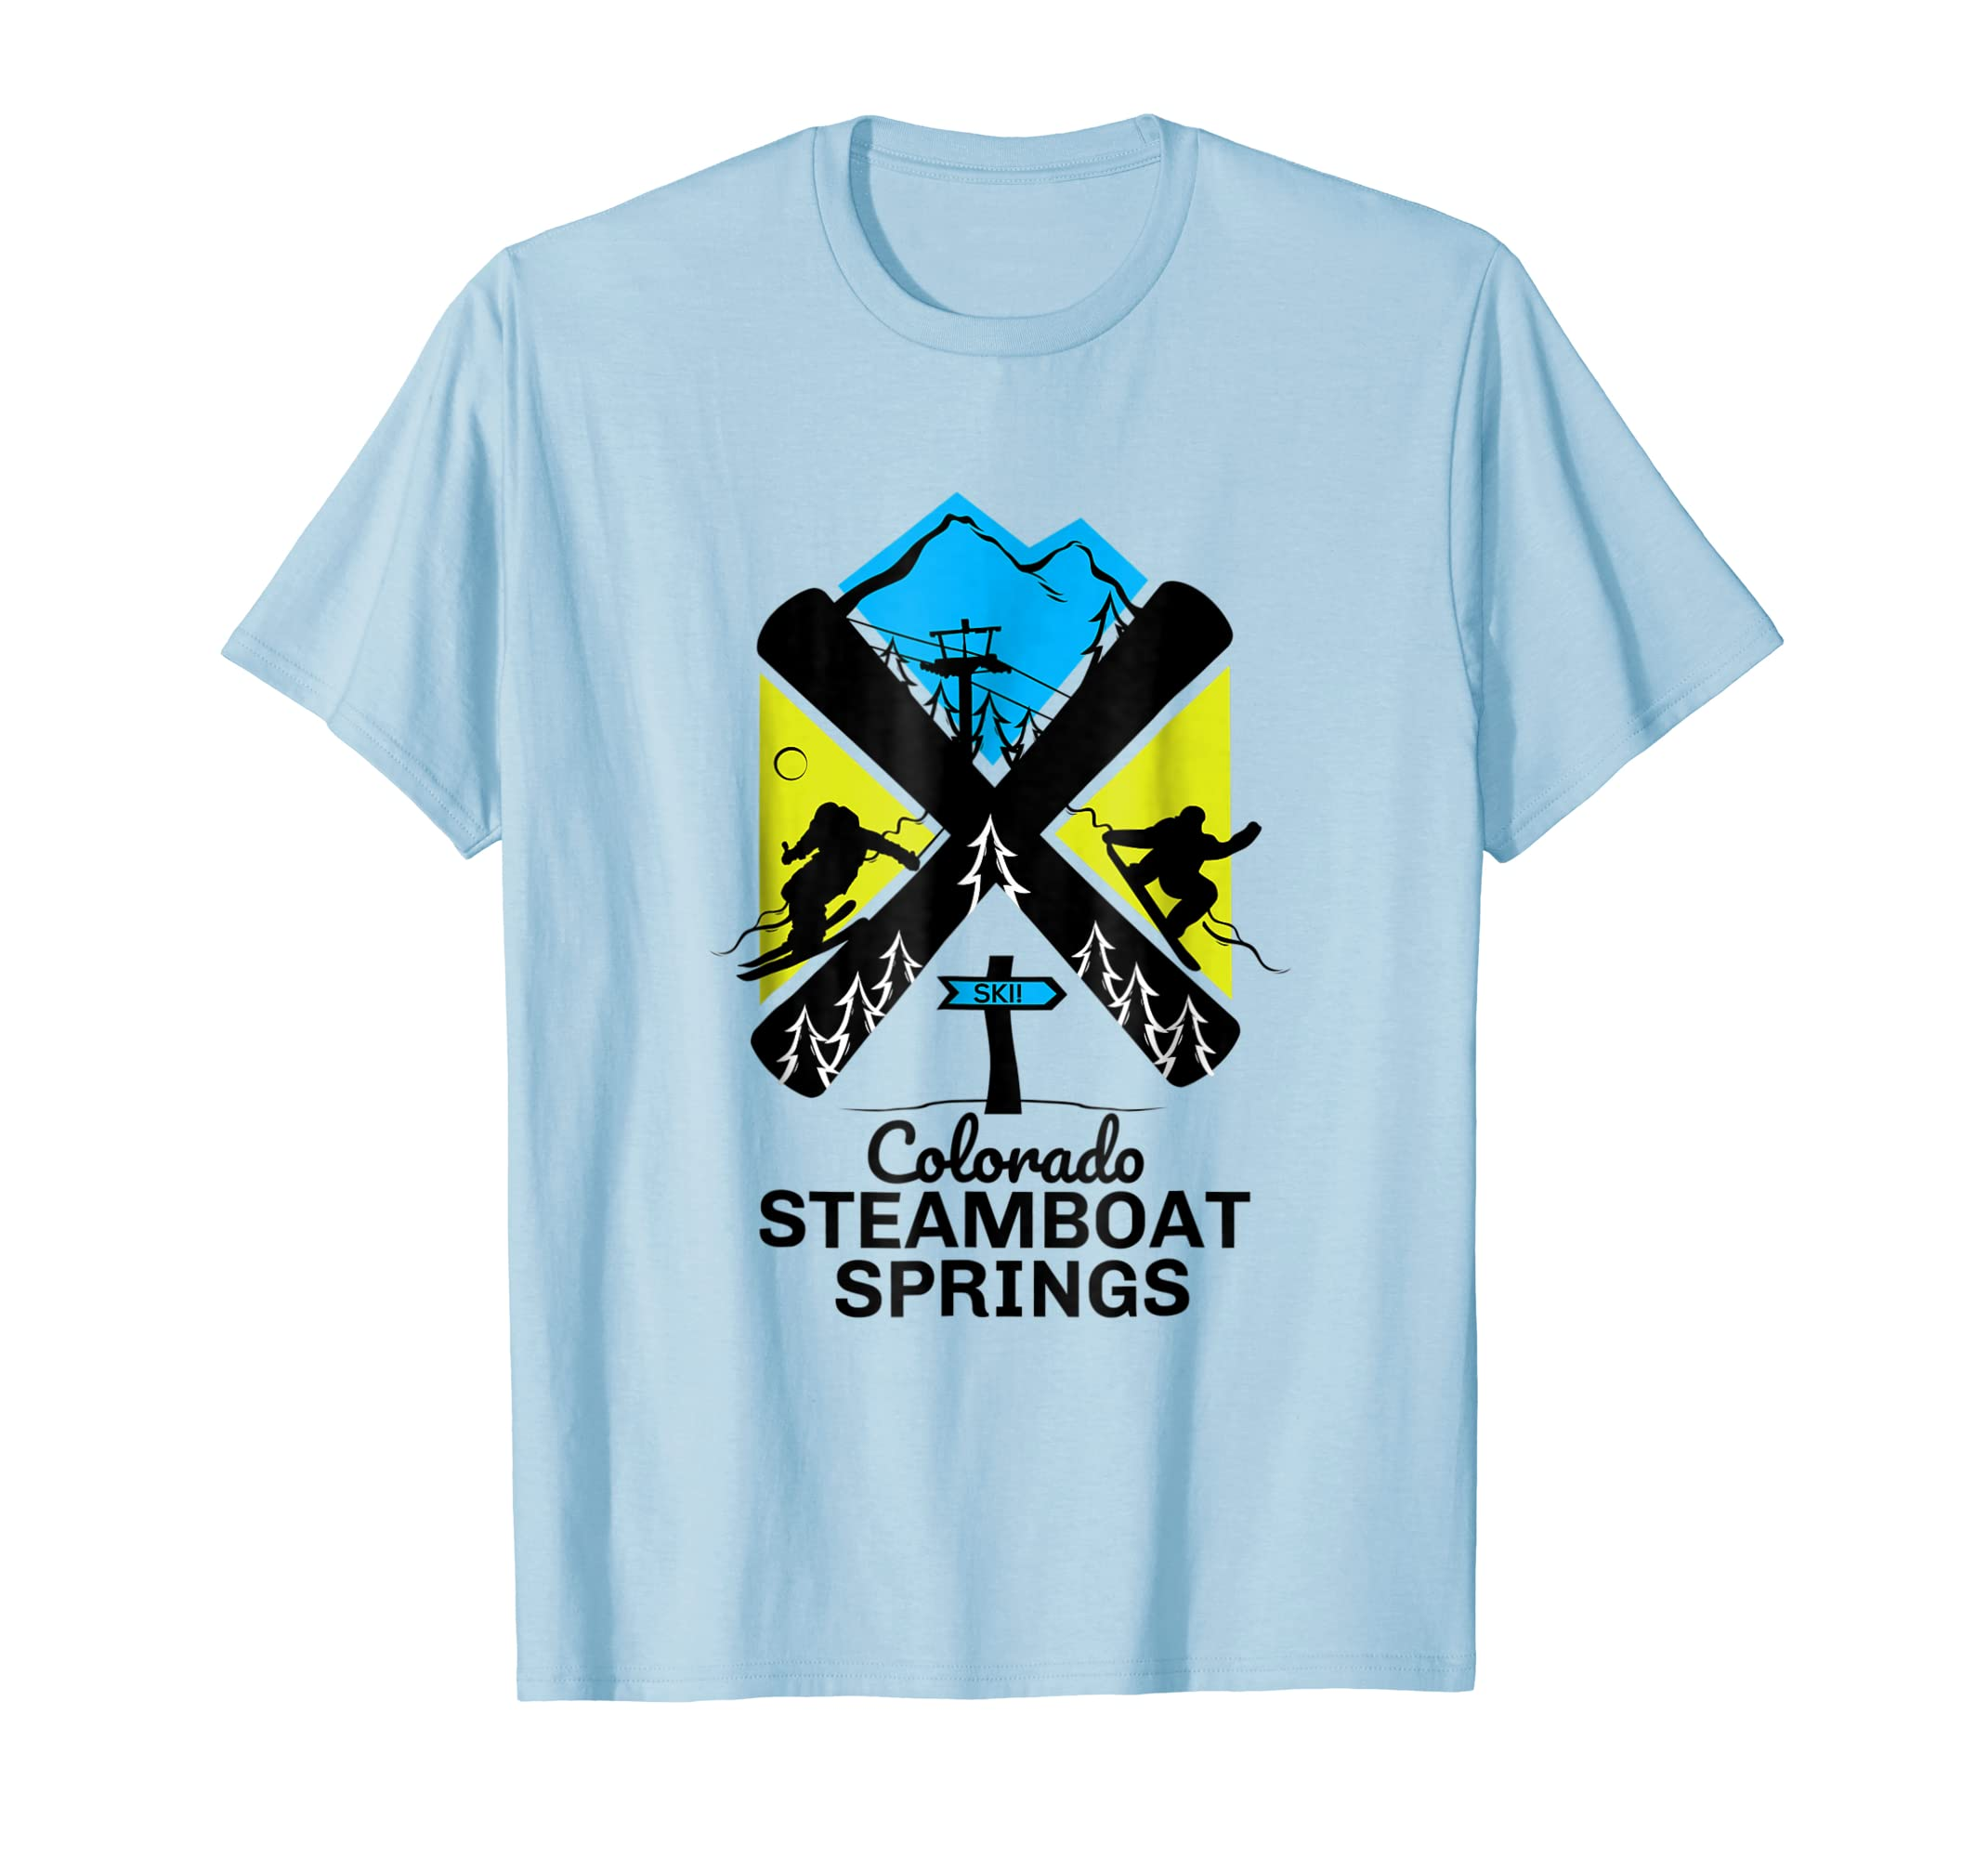 cd609b69ff Amazon.com  Steamboat Springs ski t shirt skiing   snowboard accessories   Clothing